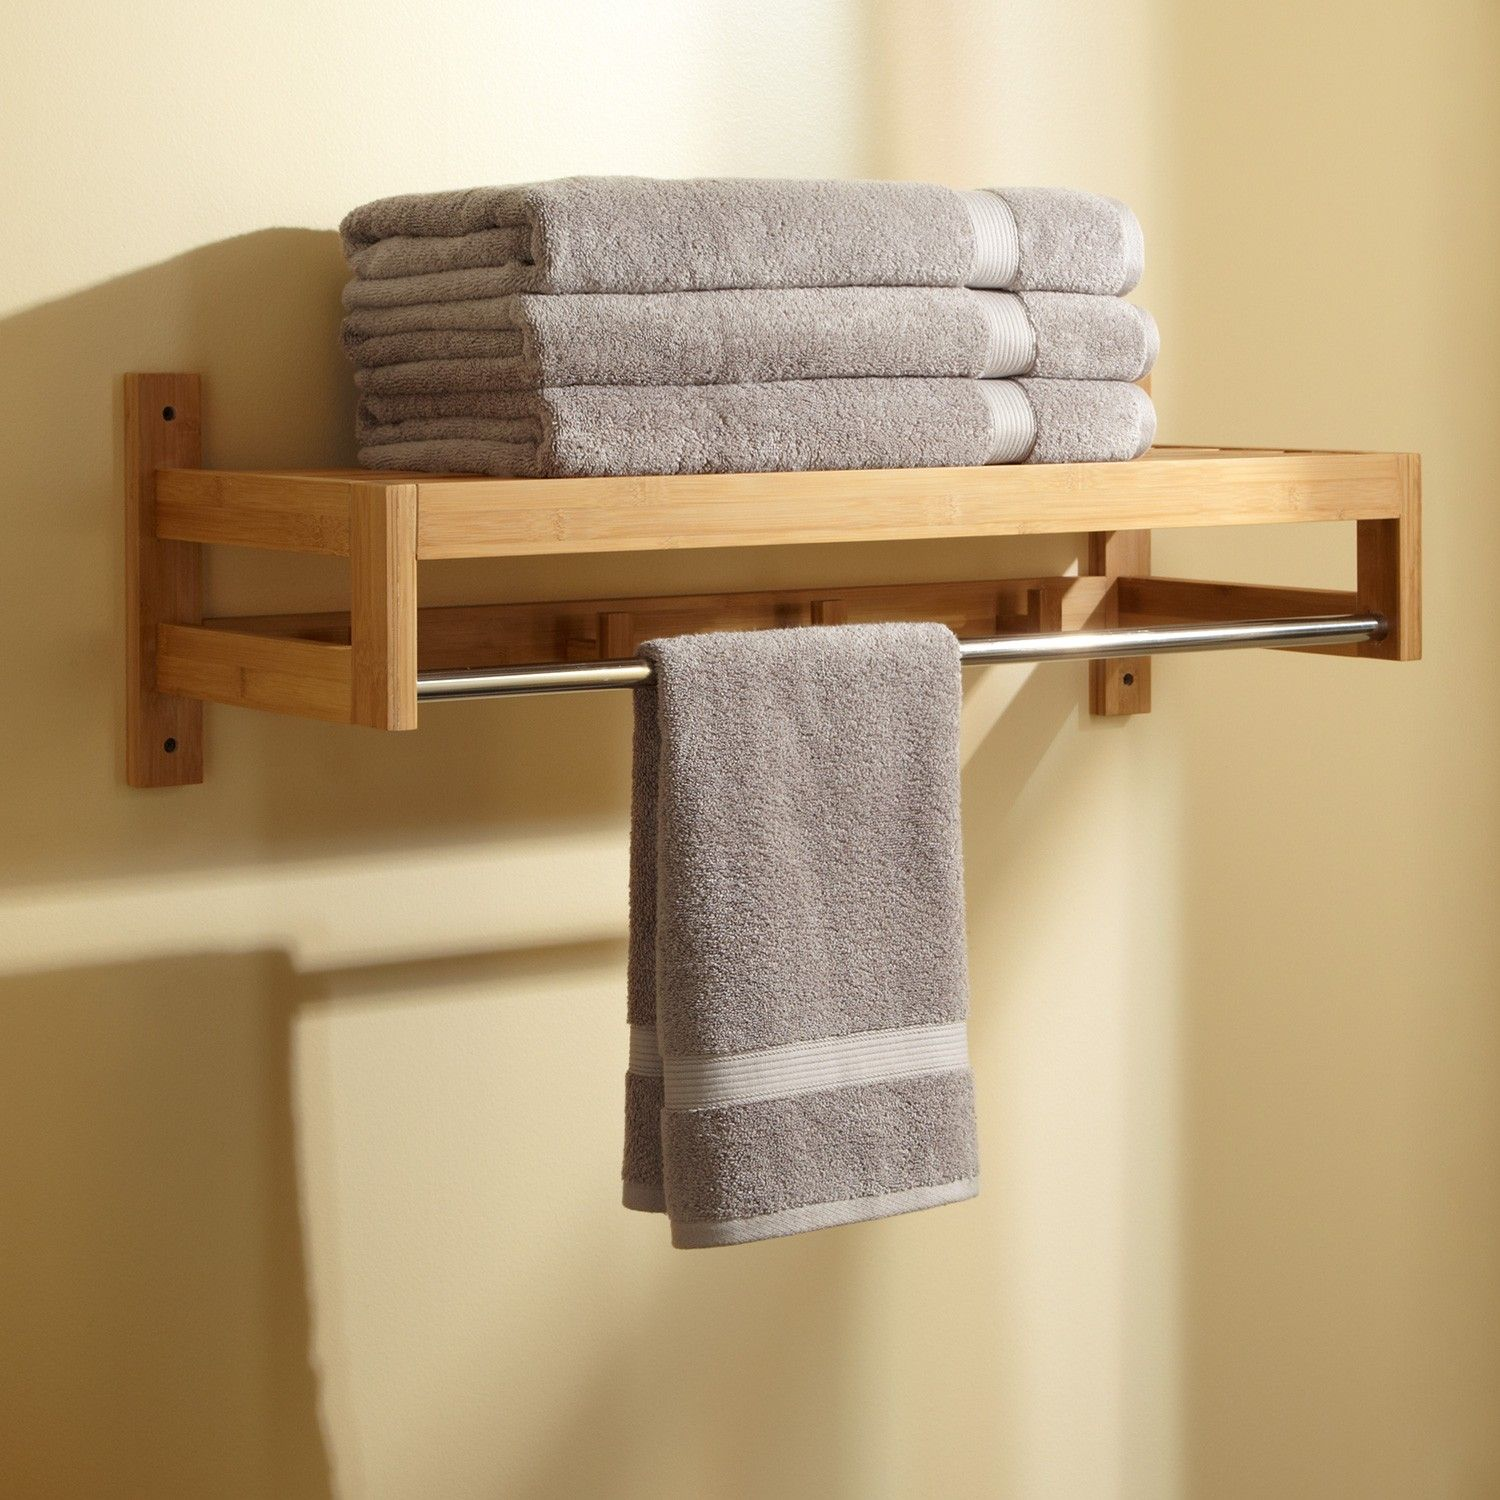 Bathroom Towel Hooks Bamboo Towel Rack With Hooks New Bathroom - Wooden towel storage for small bathroom ideas